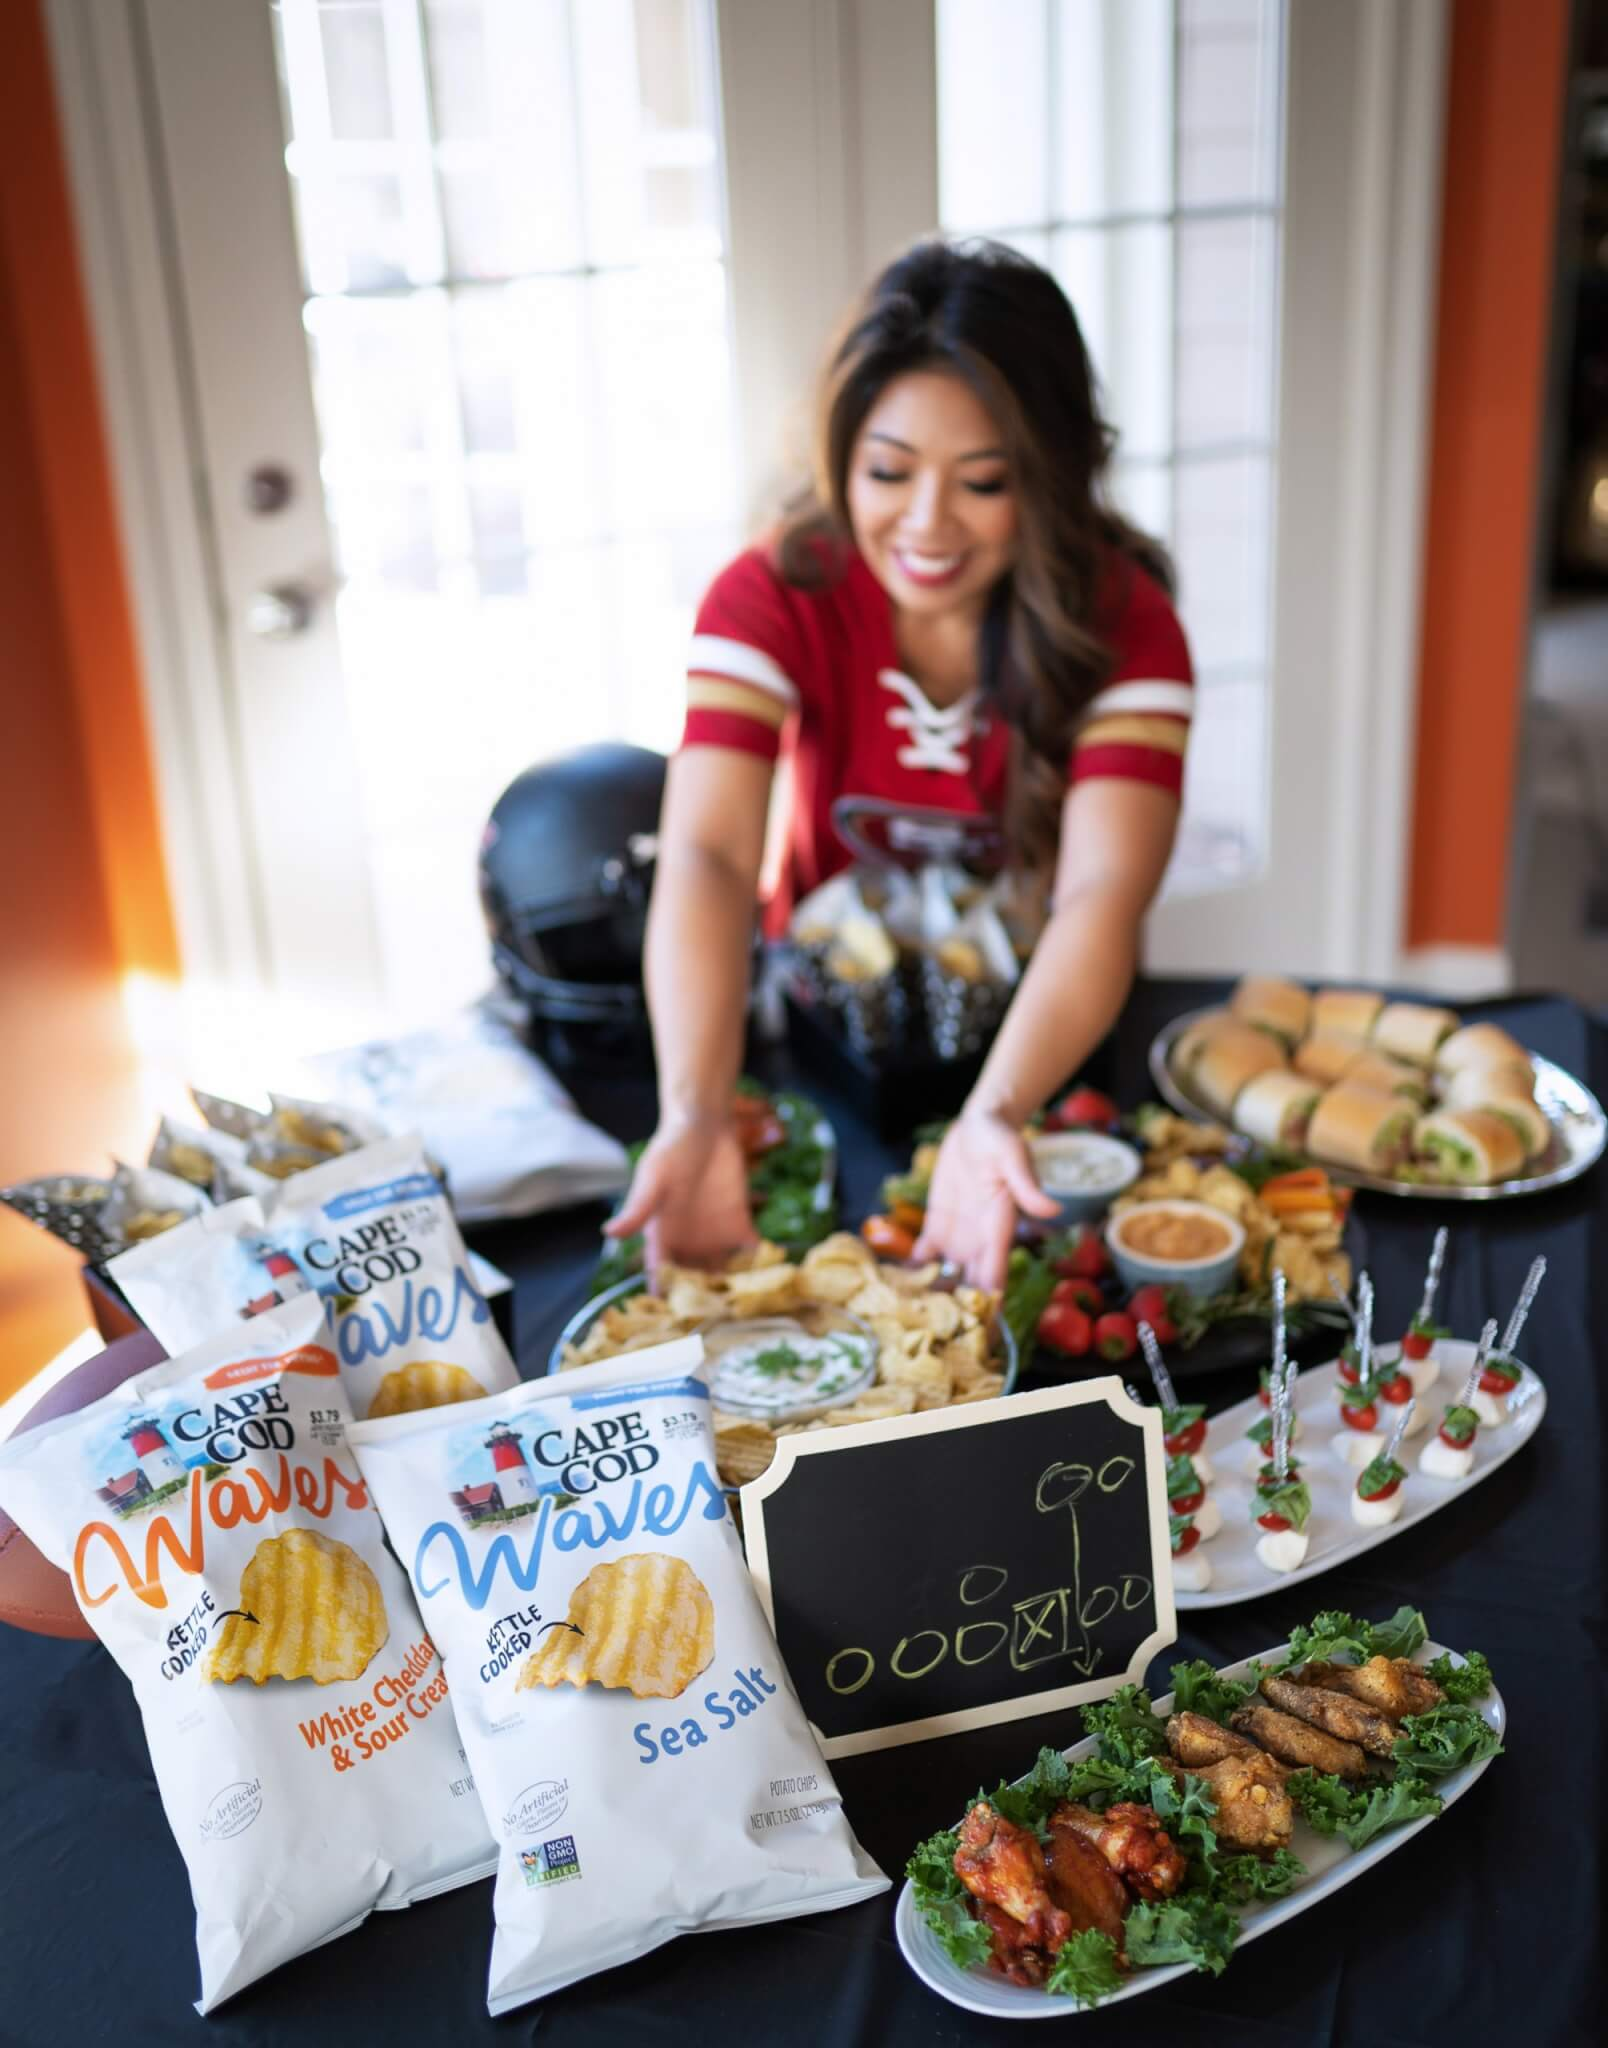 Cape Cod Chips, Cape Cod potato chips, Cape Cod Waves®Chips, best potato chips, kettle cooked chips, crunchy potato chips, @CapeCodChips, Cape Cod Chips Waves®